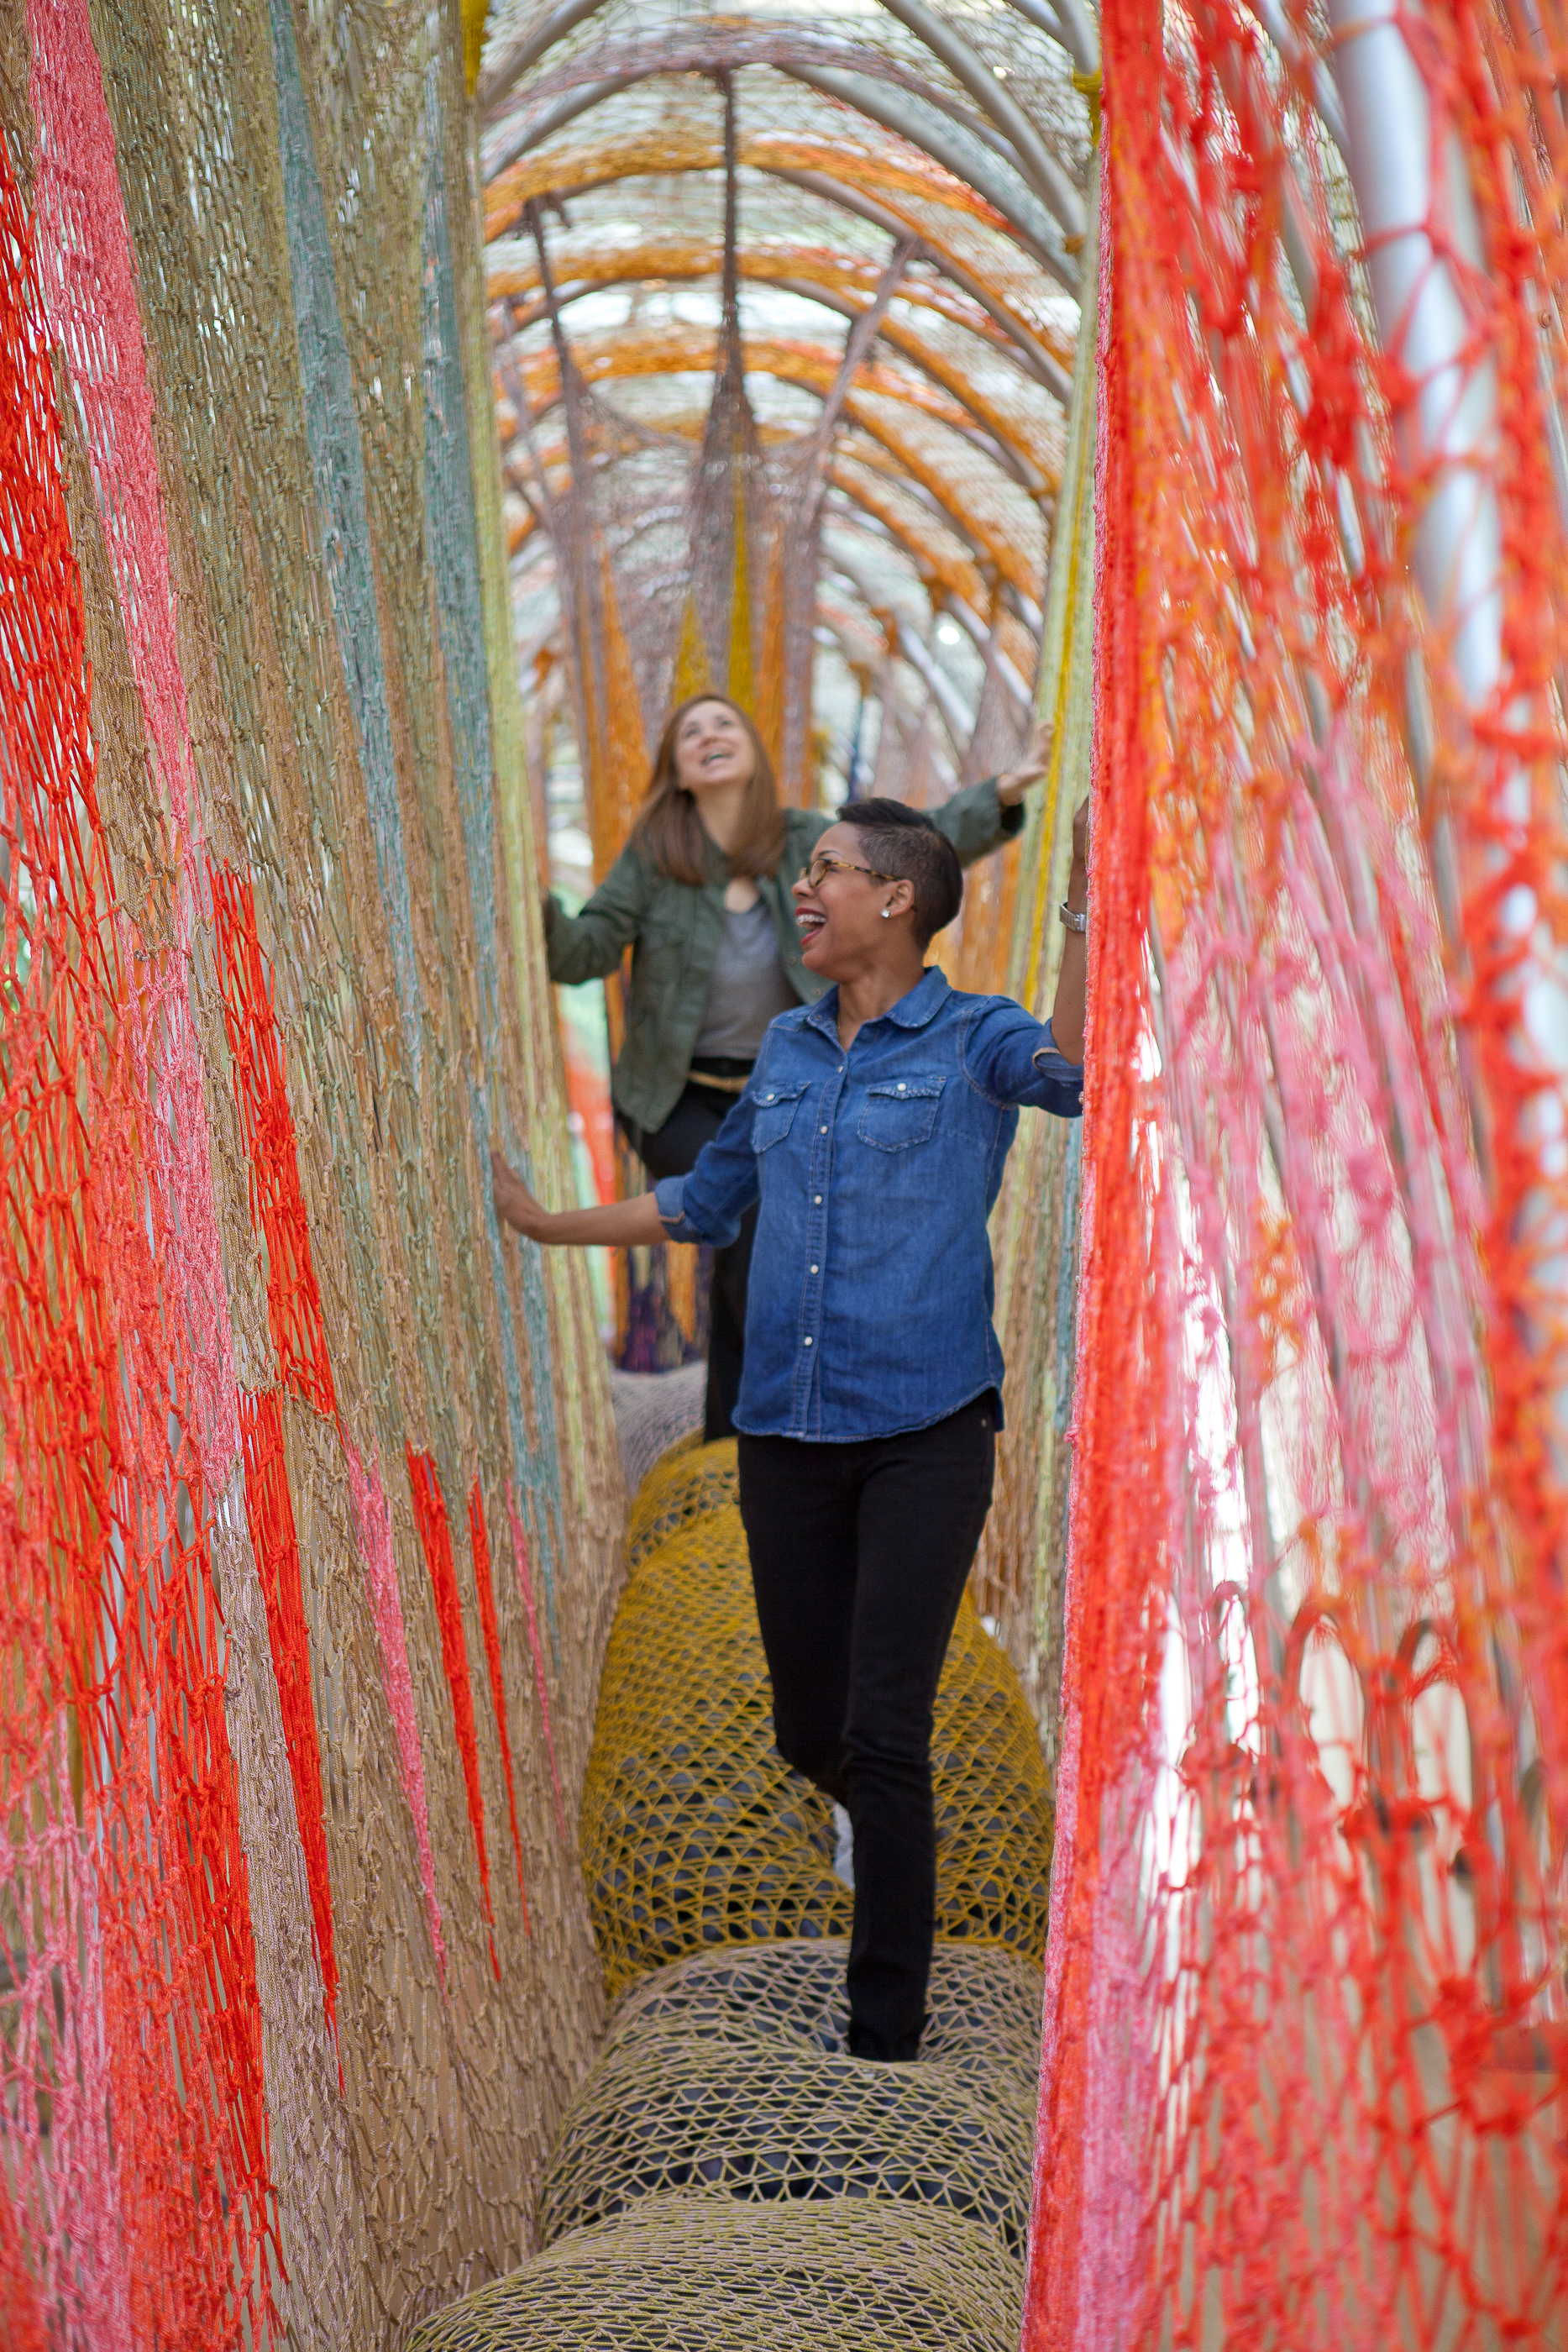 Ernesto Neto's exhibition at the Nasher Sculpture Center